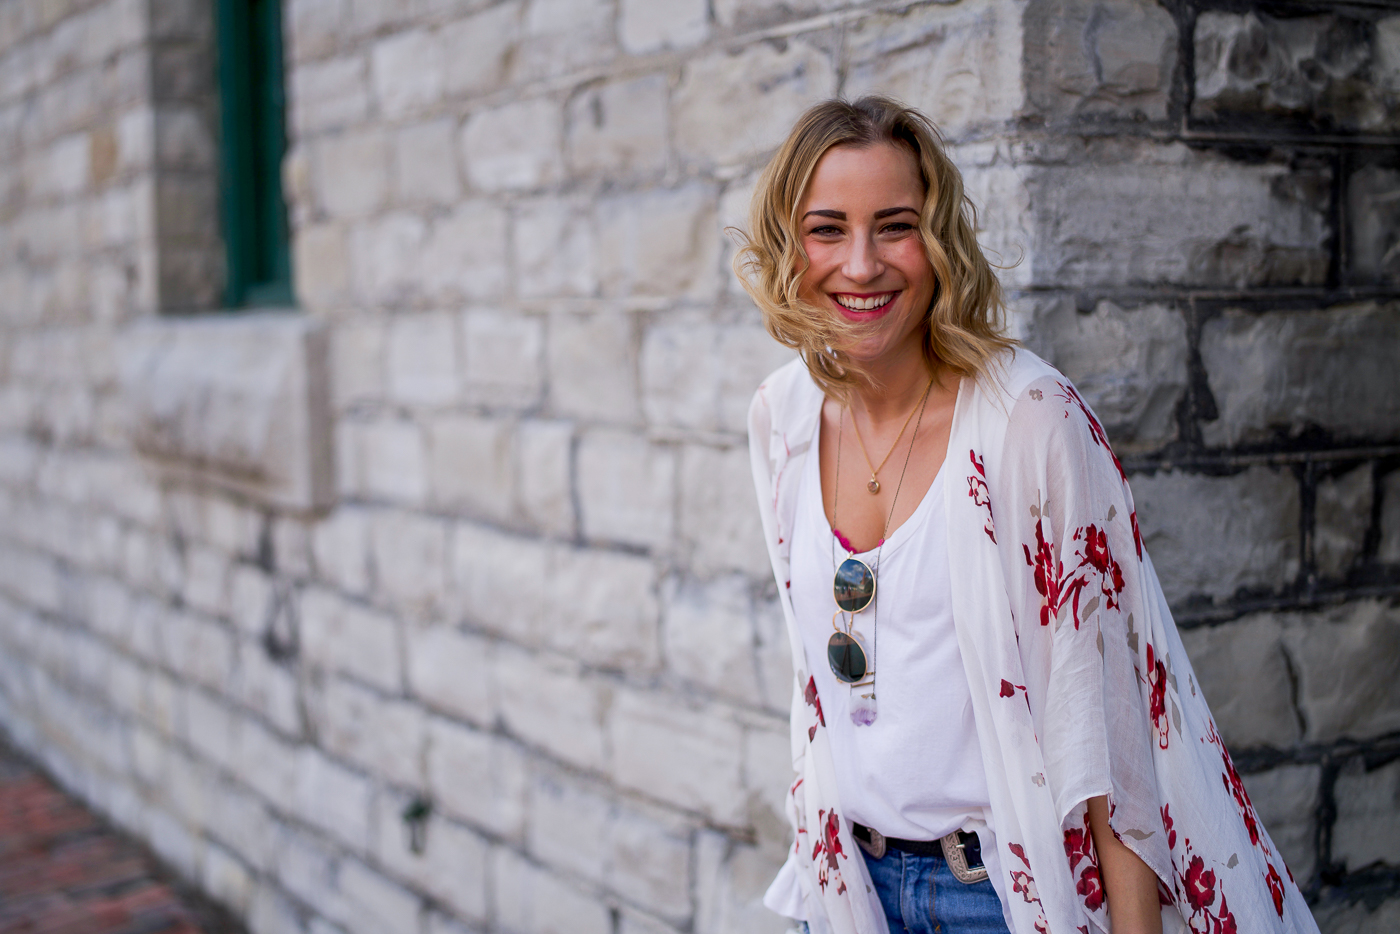 Jackie Goldhar is a Toronto fashion and lifestyle blogger, wearing a Gentle Fawn floral kimono as a part of a spring outfit